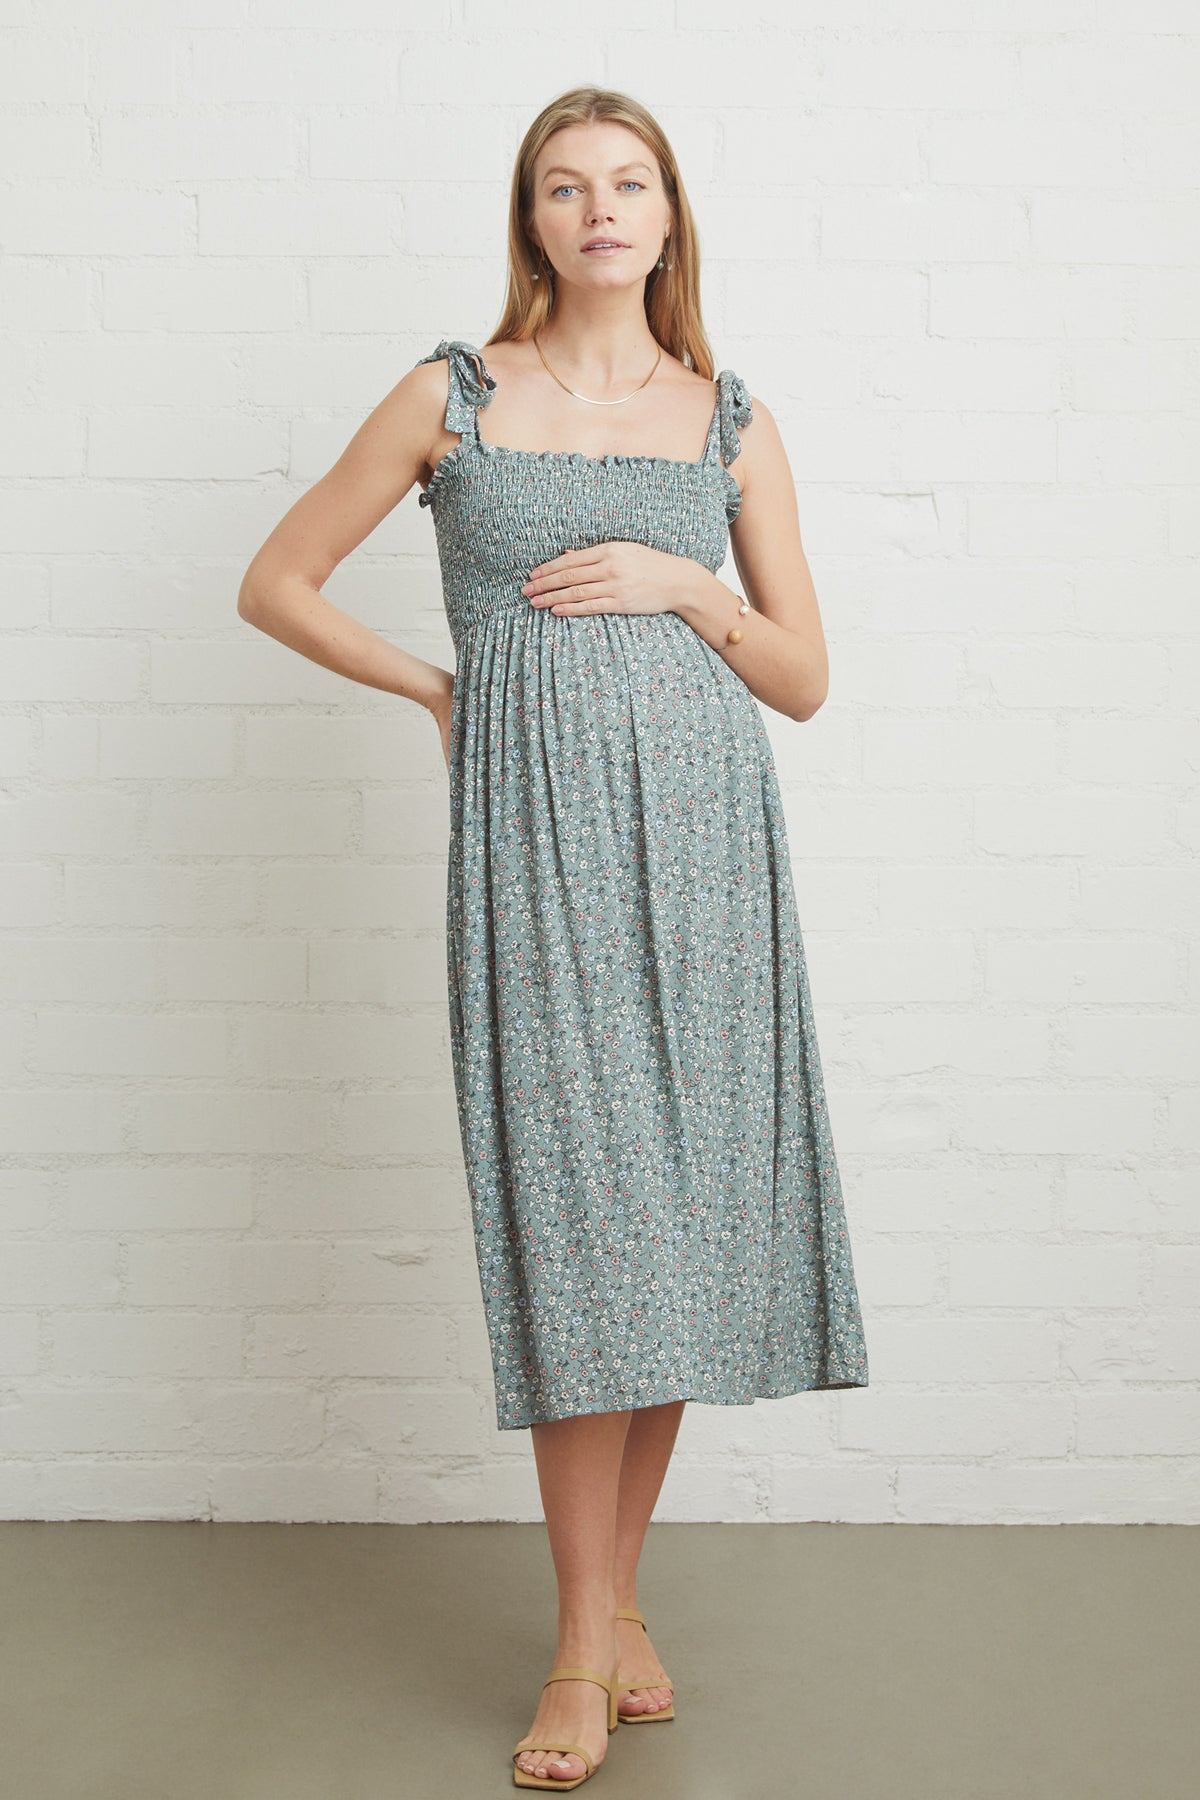 Crepe Pixie Dress - Forget Me Not, Maternity